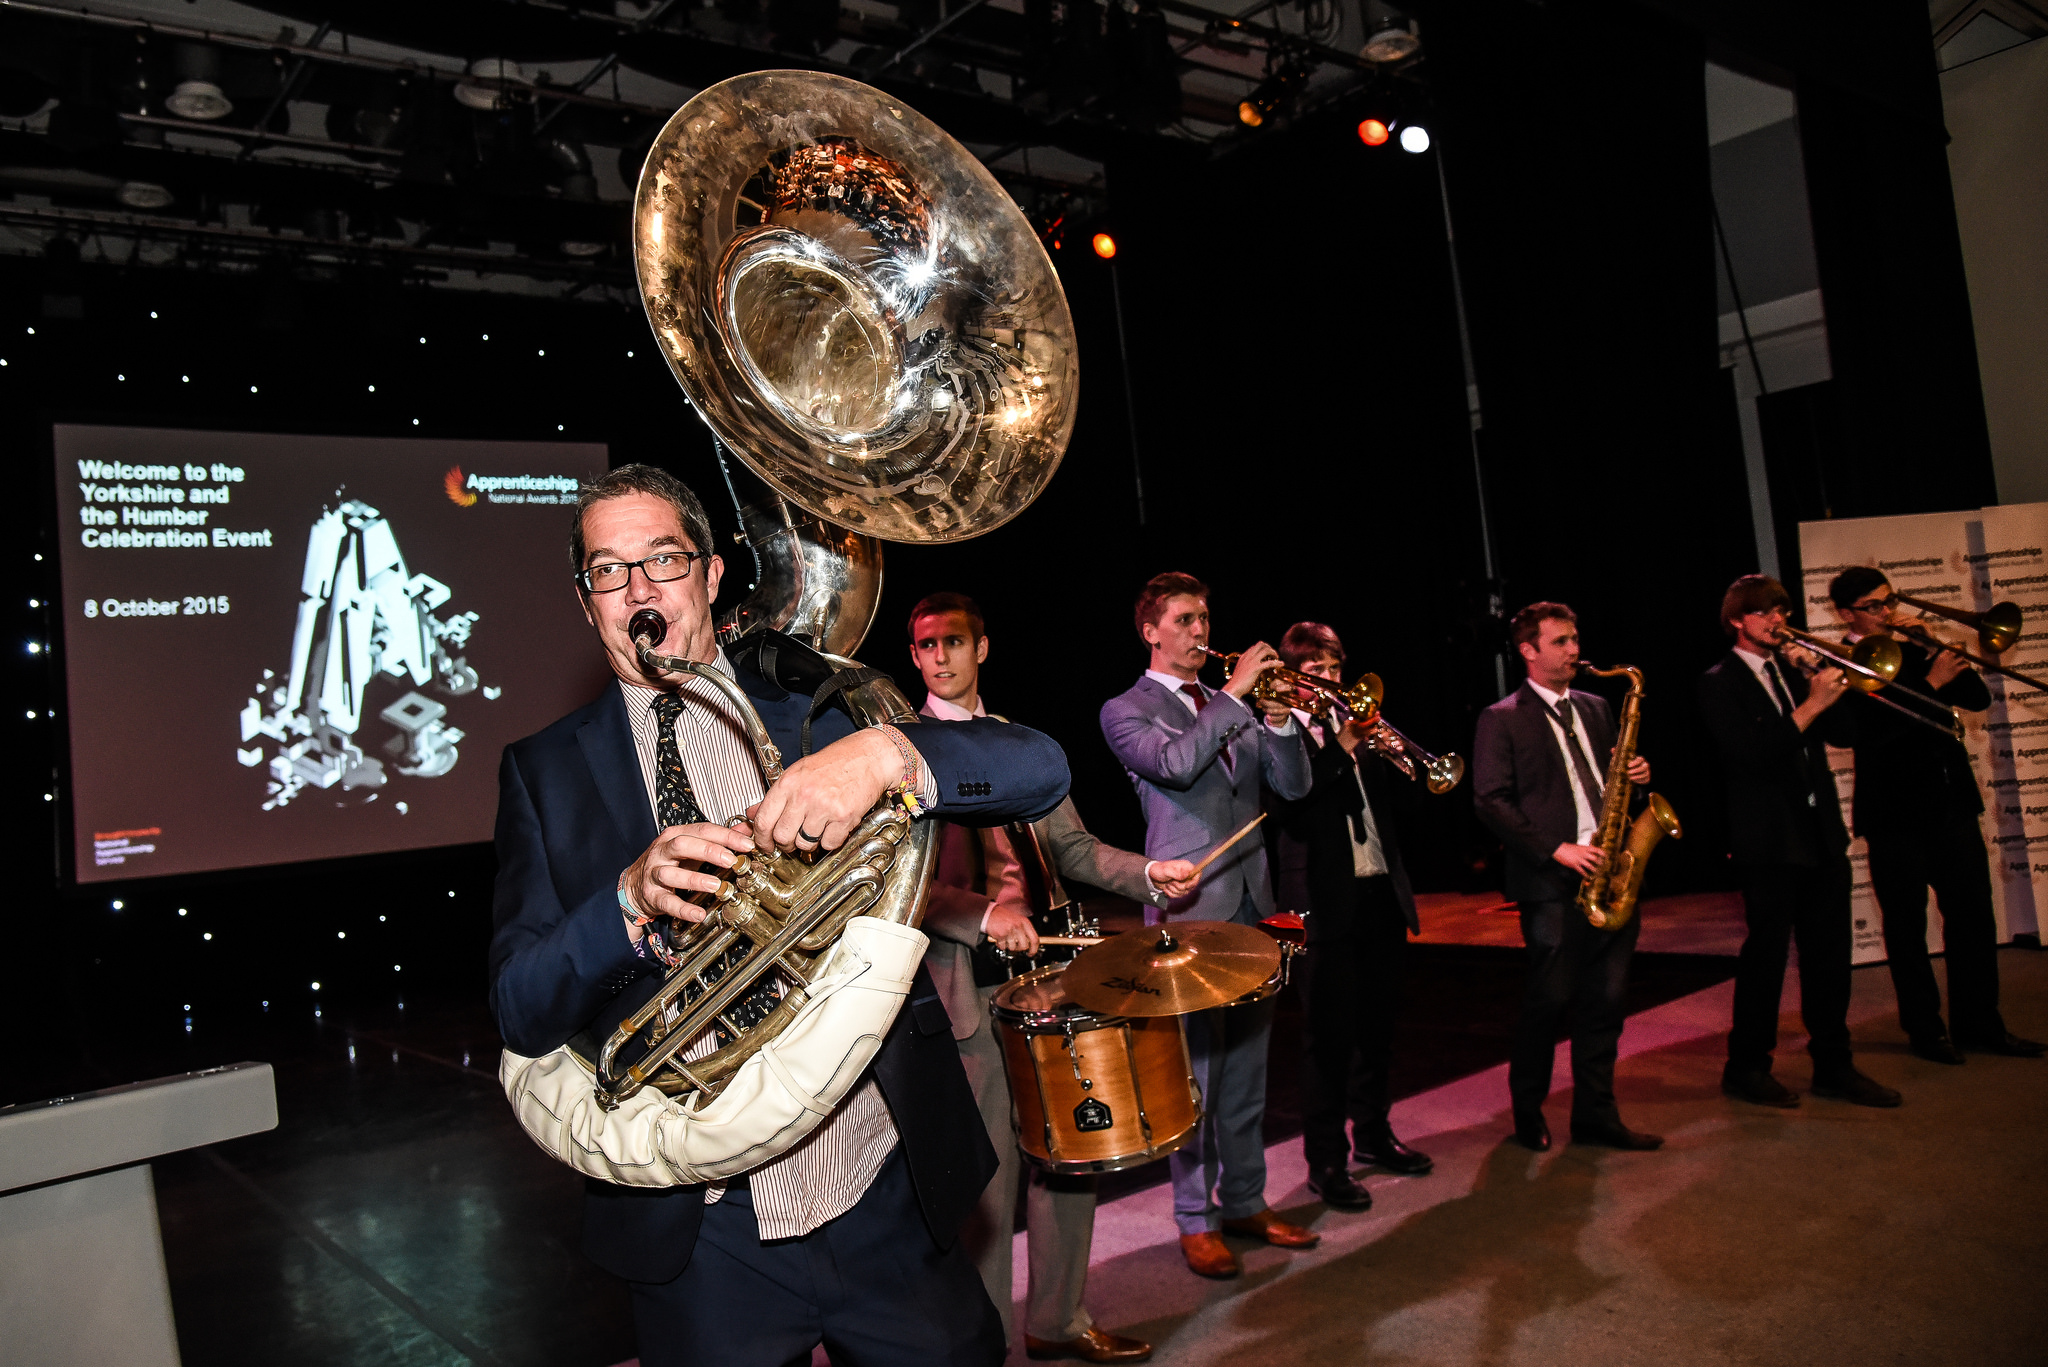 Musical entertainment at the North West Apprenticeship Awards, October 12